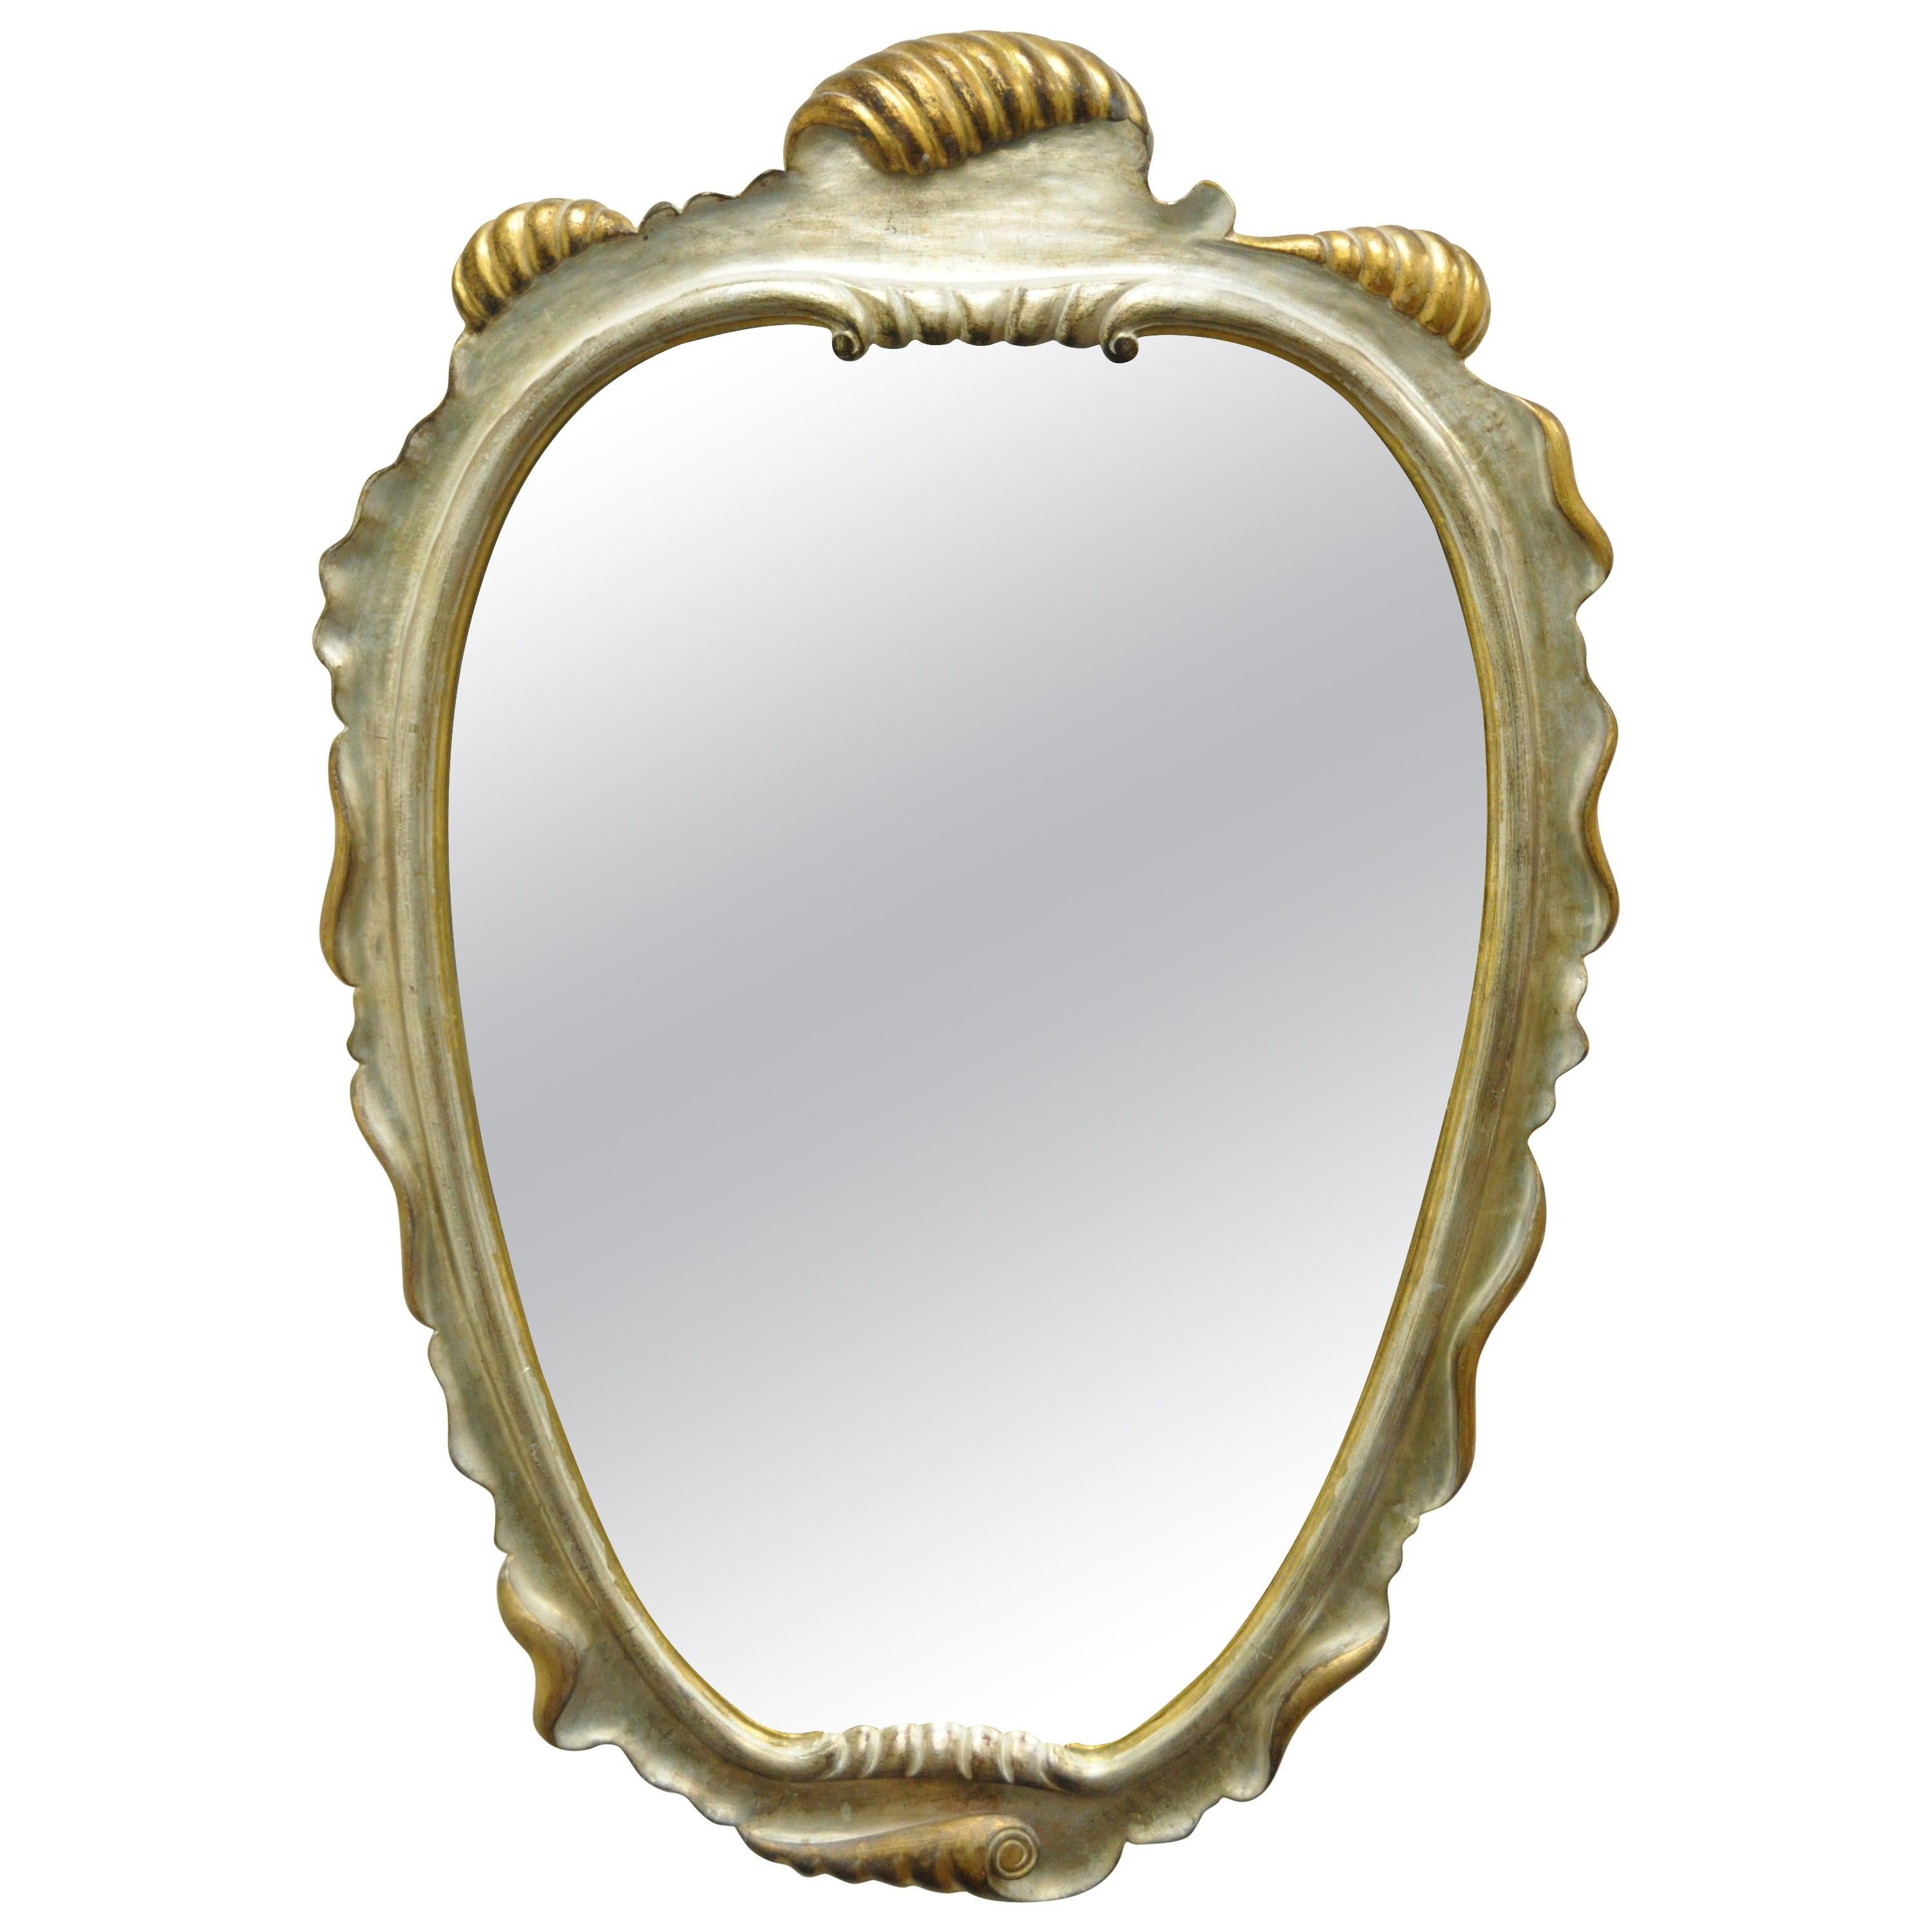 Italian Hollywood Regency Gold and Silver Giltwood Mirror after Dorothy Draper